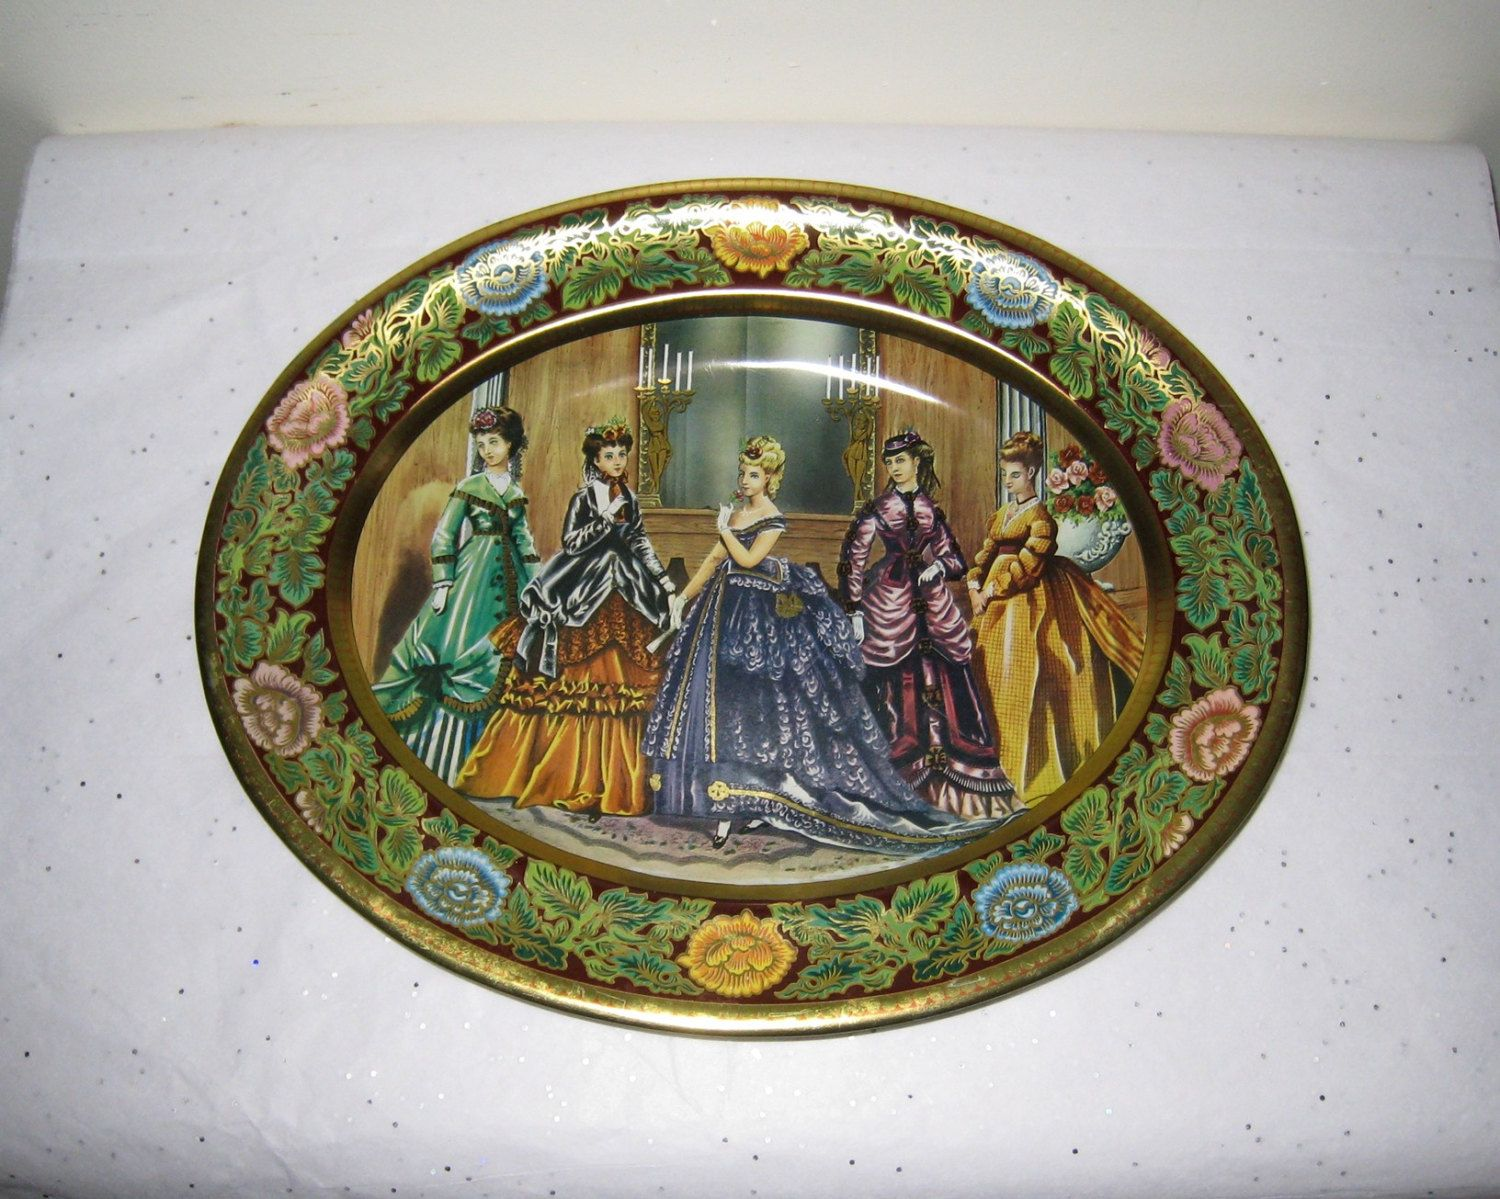 Daher Decorated Ware Tray Made In England Inspiration Daher Decorated Ware Oval Tin Tray  Metalware Bowl  Tin Litho Design Decoration